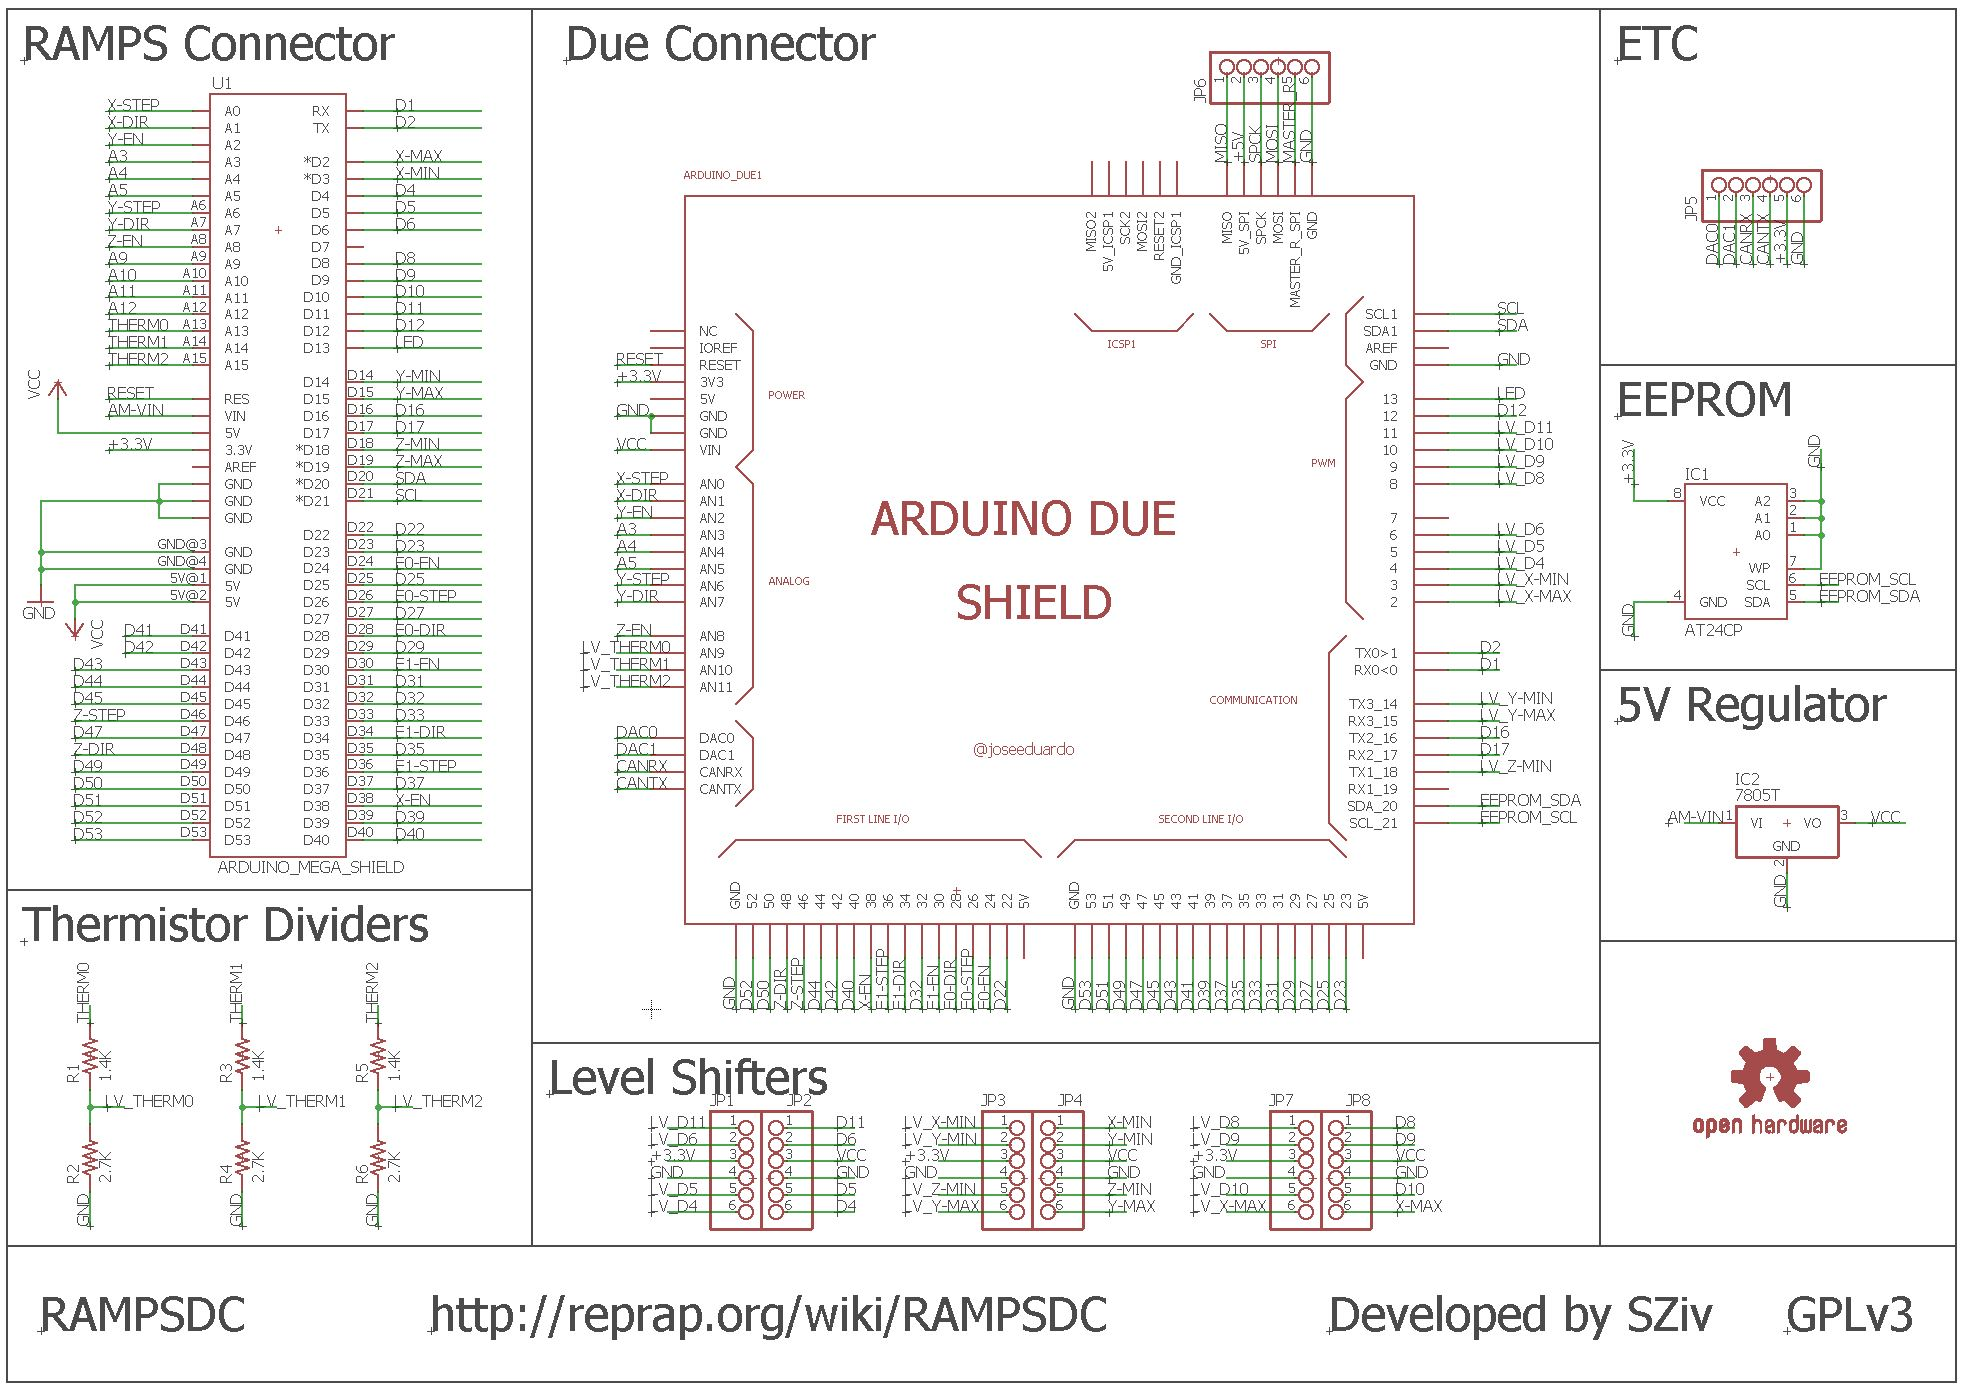 How To Modify A Standard Ramps 14 Work With Arduino Due Ramps14 Geeetech Wiki Schematic